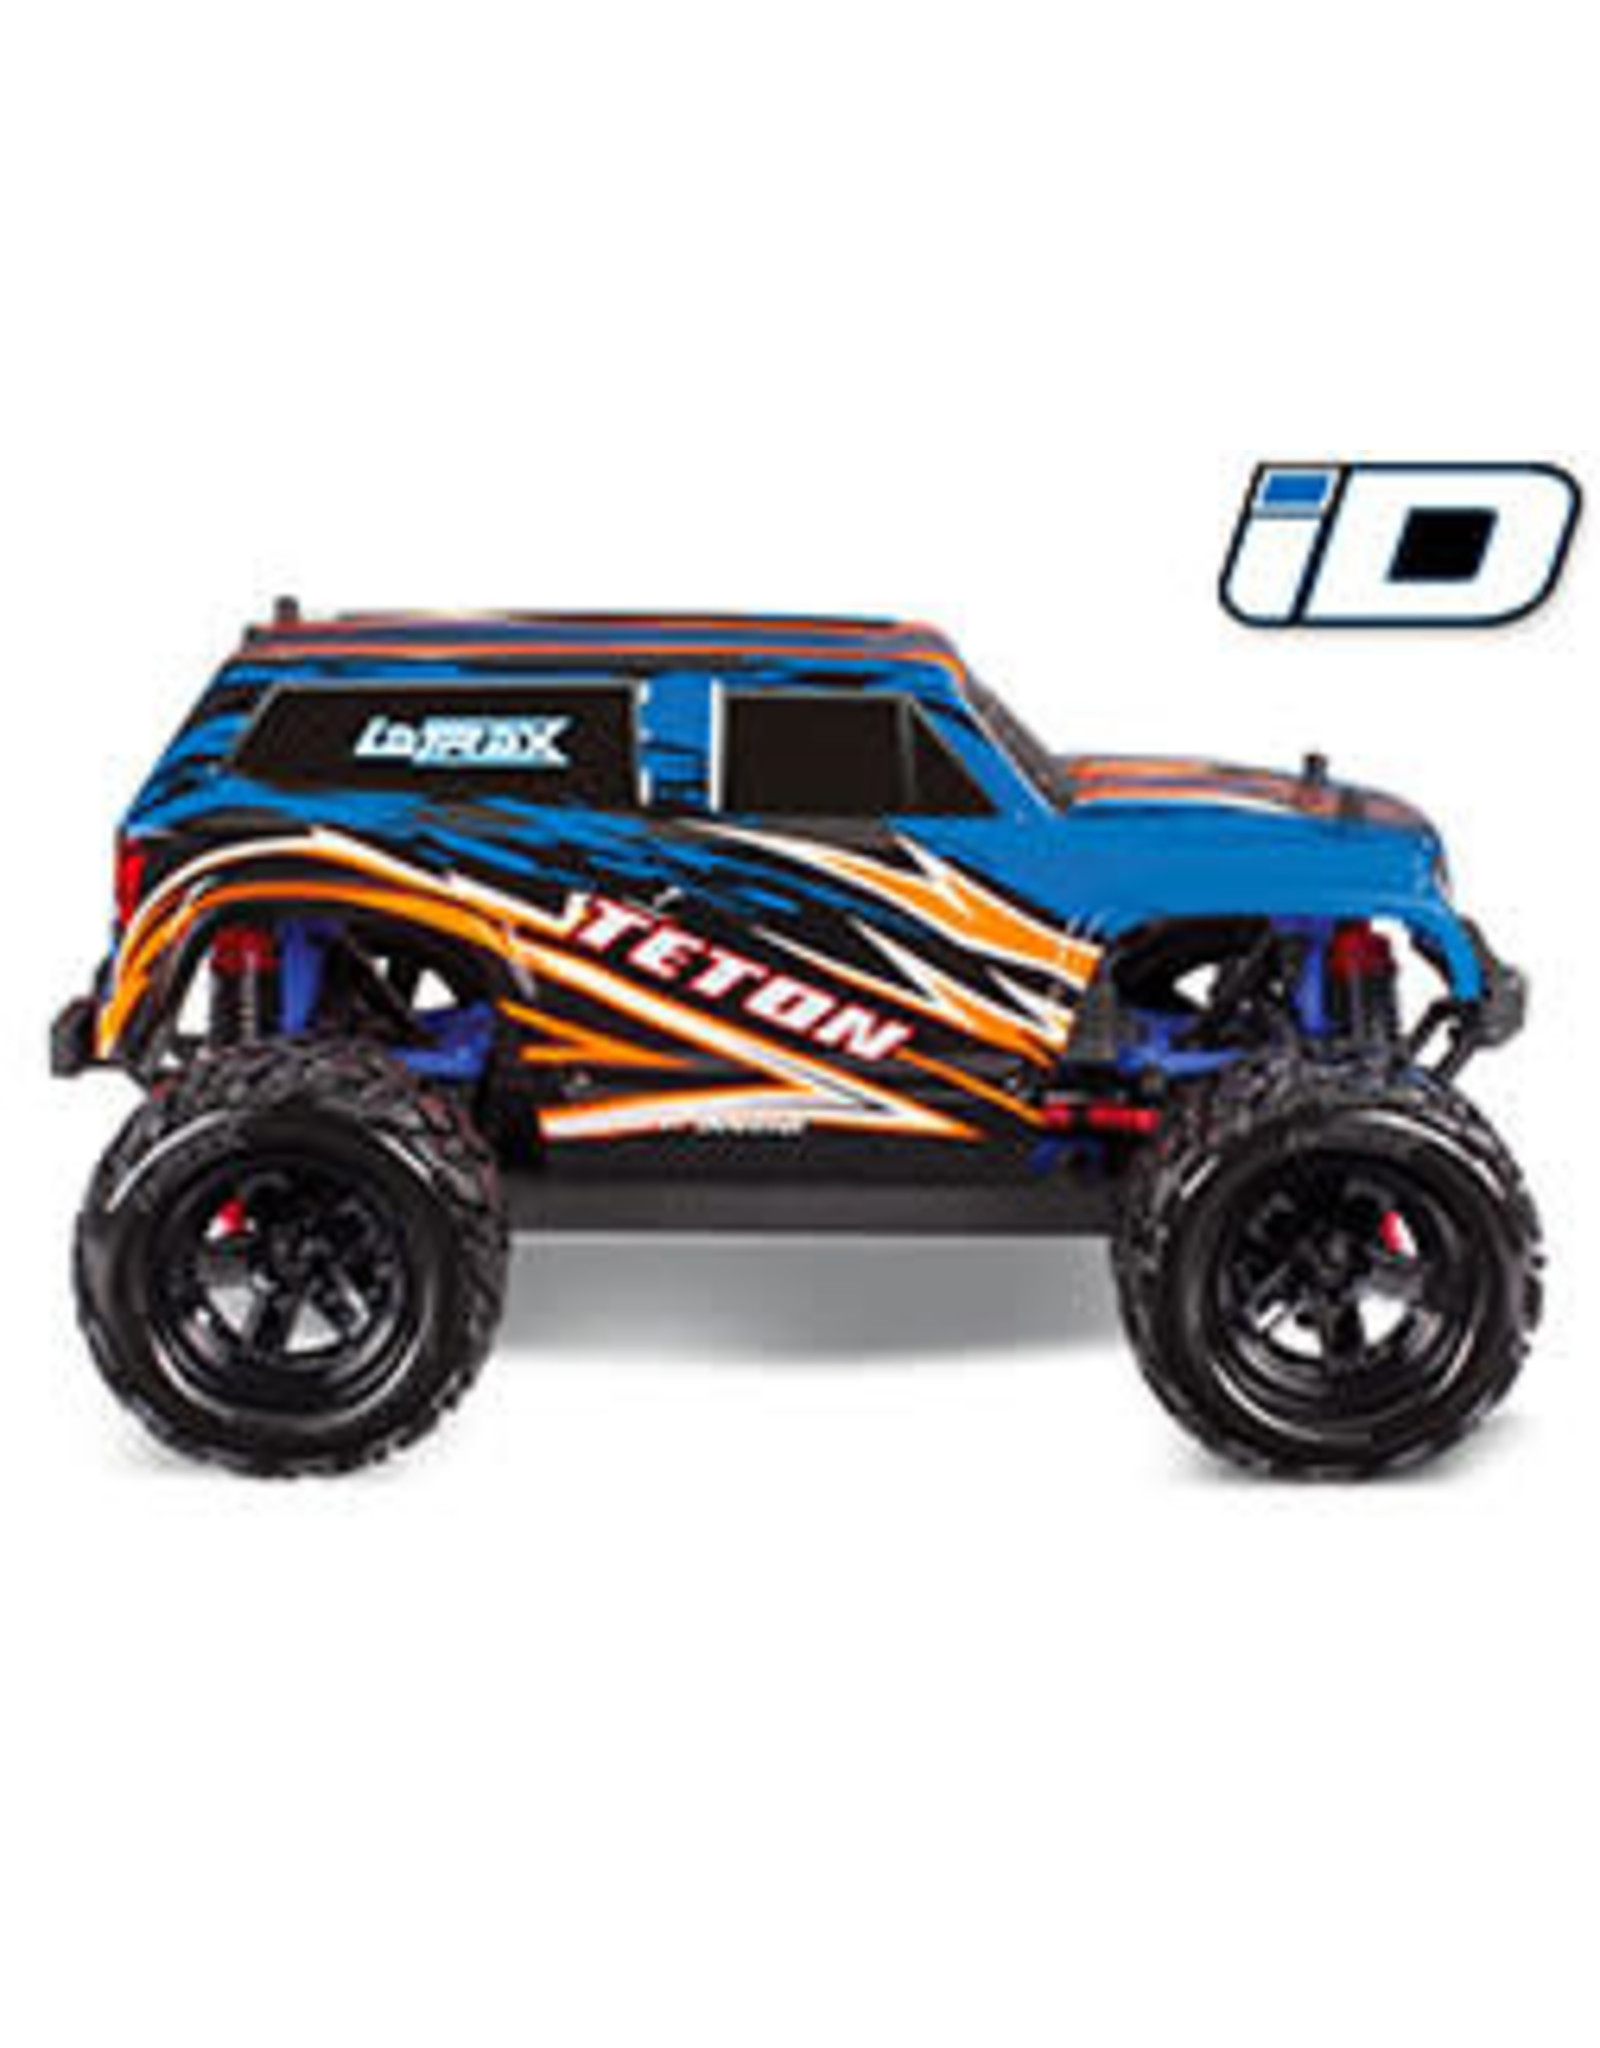 Traxxas LaTrax Teton: 1/18 Scale 4WD Electric Monster Truck